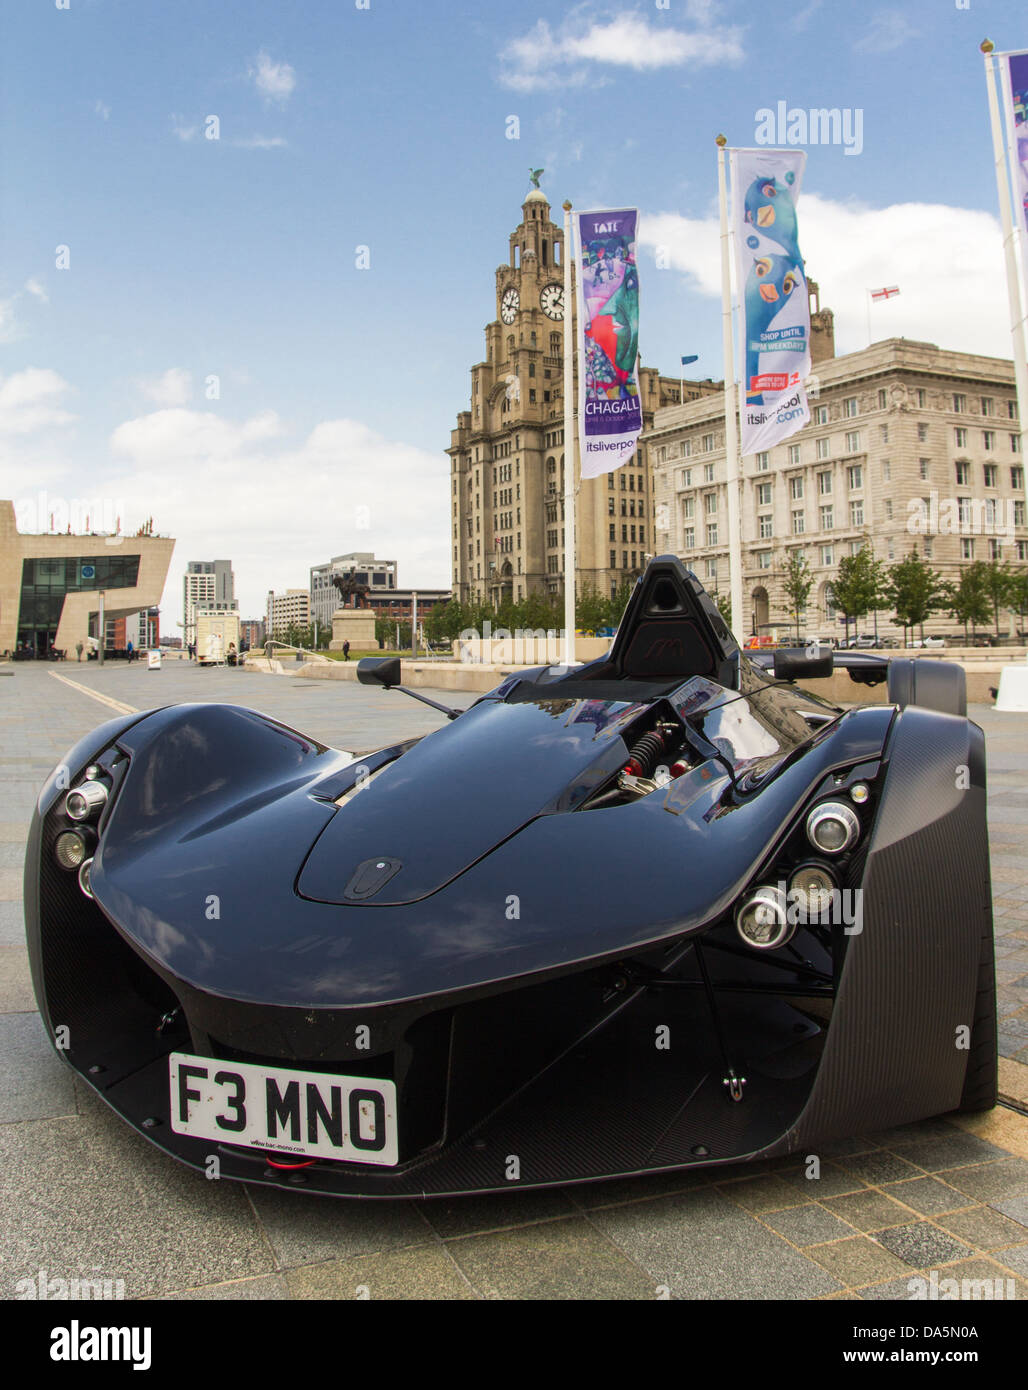 The BAC Mono, on Liverpool's historic waterfront, with the Cunard building and Liver building in the background - Stock Image